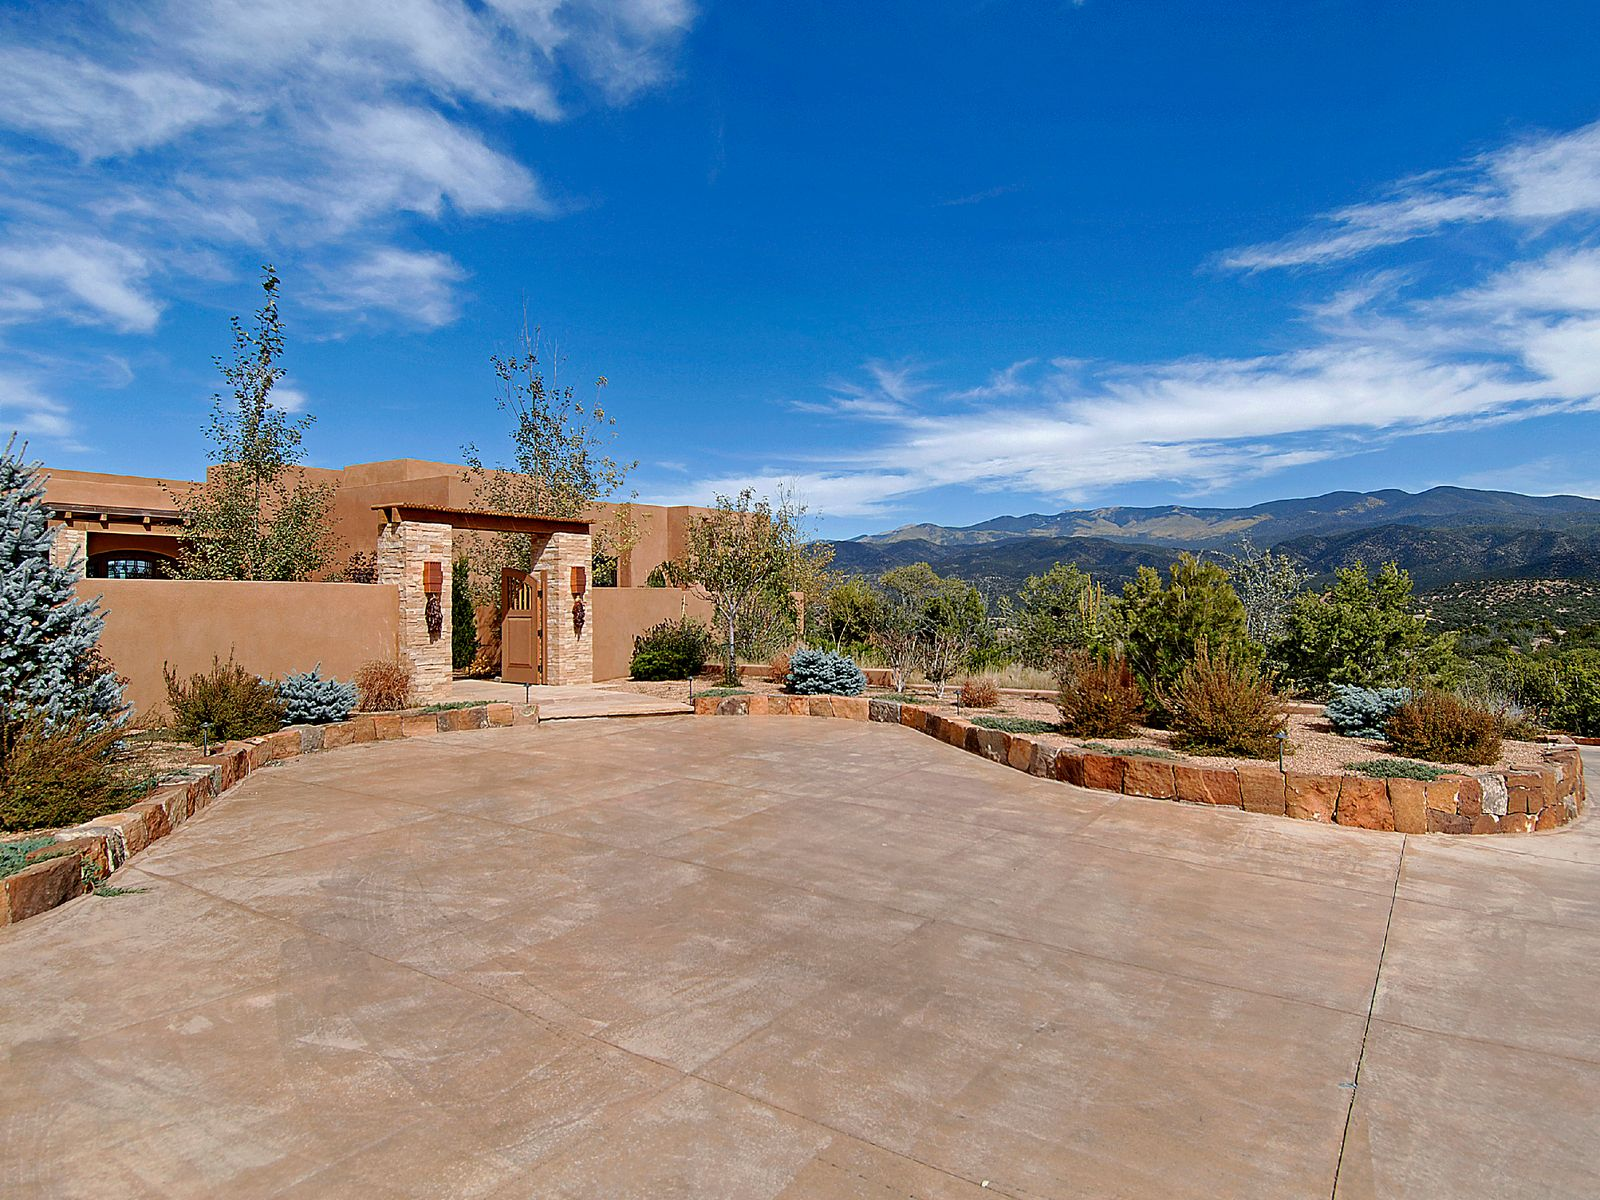 Monte Sereno Award Winning Contemporary, Santa Fe NM Single Family Home - Santa Fe Real Estate